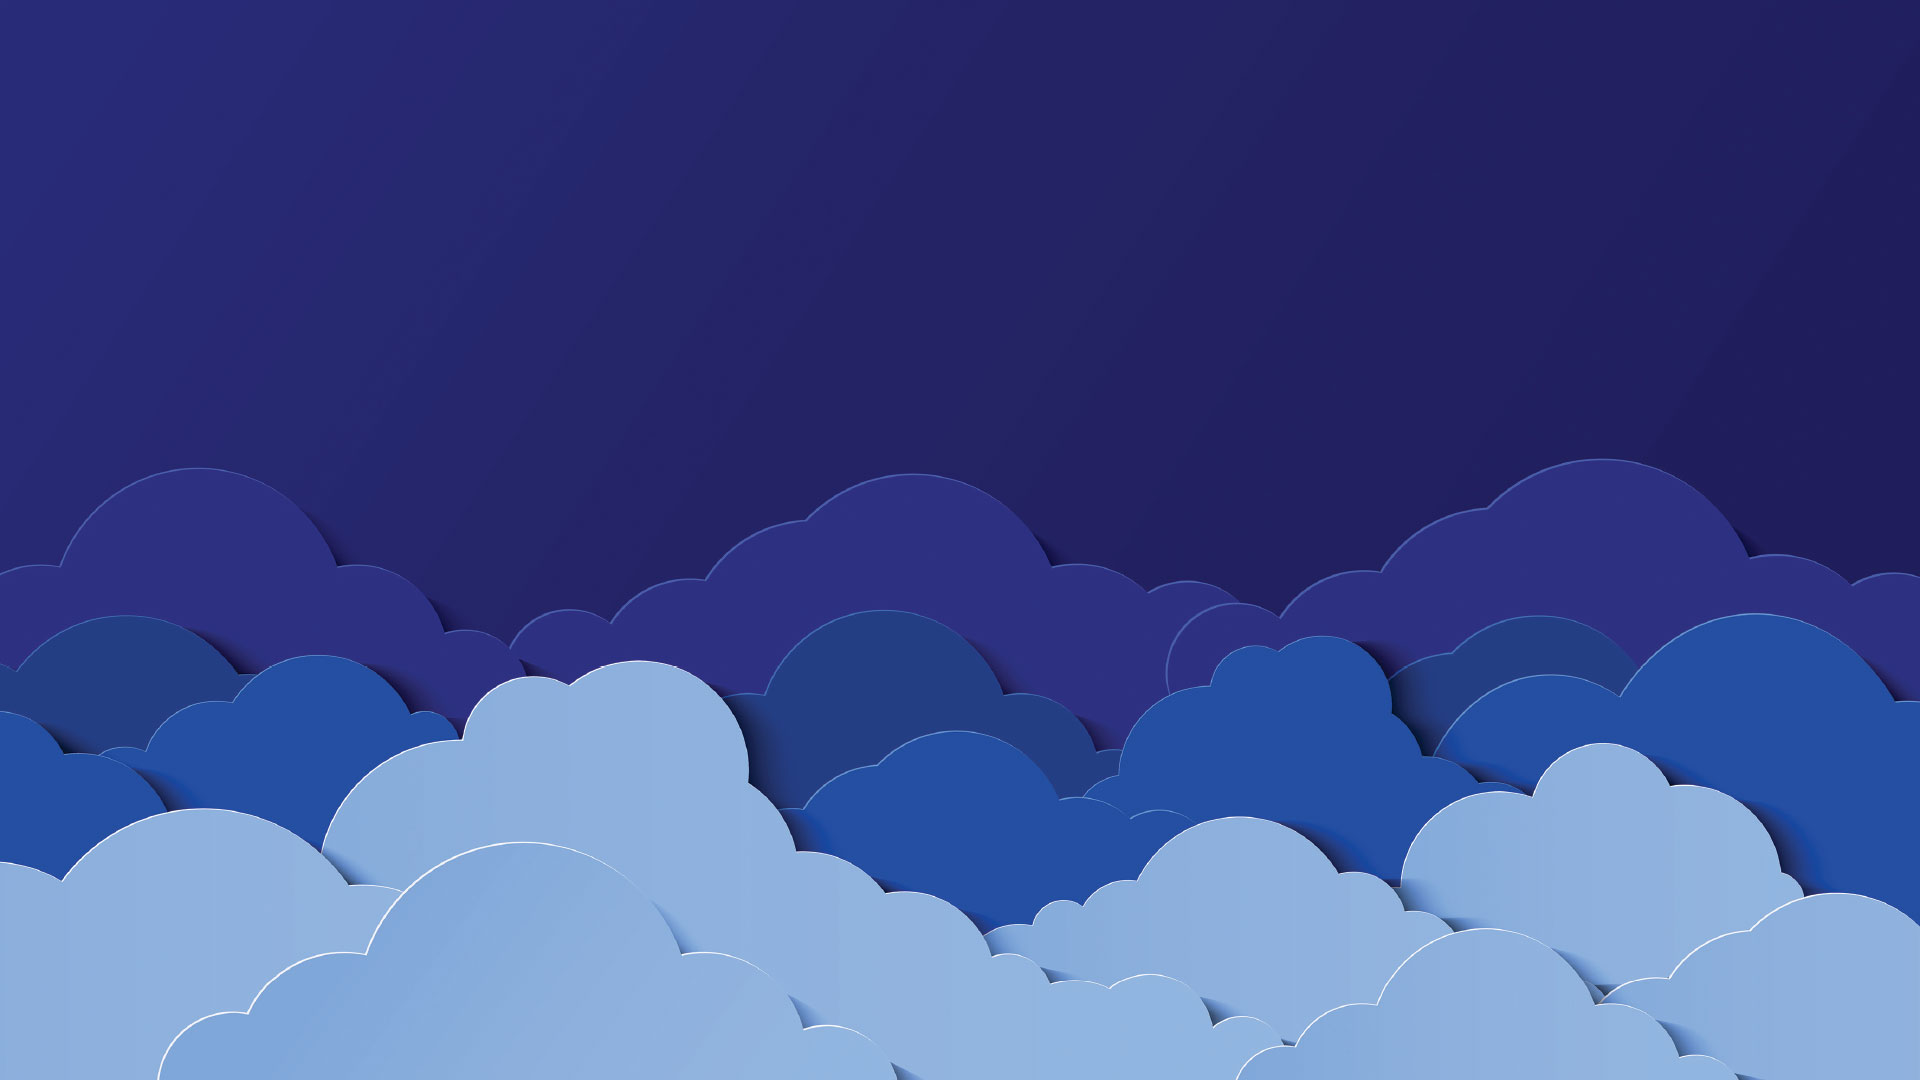 Cutouts of clouds in light blue against a dark blue background